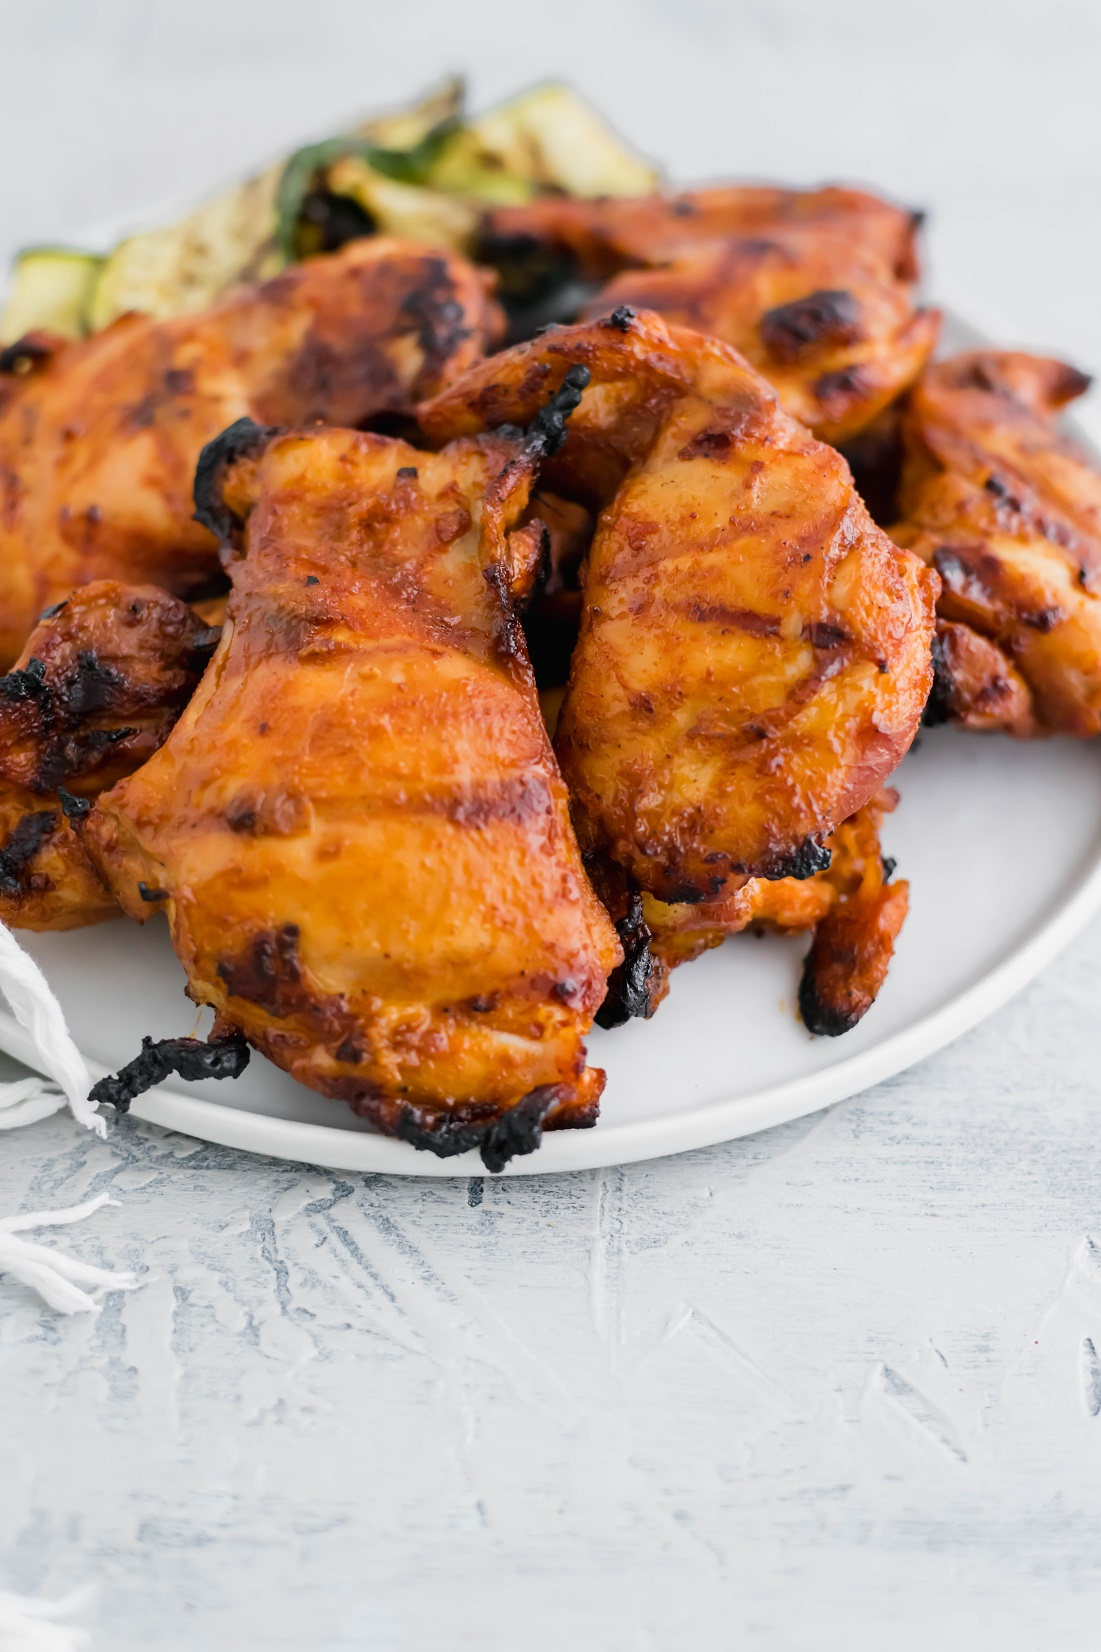 Need to spice up your summer grilling routine?! This spicy chicken marinade is super flavorful and simple to make. Perfect for grilling season!